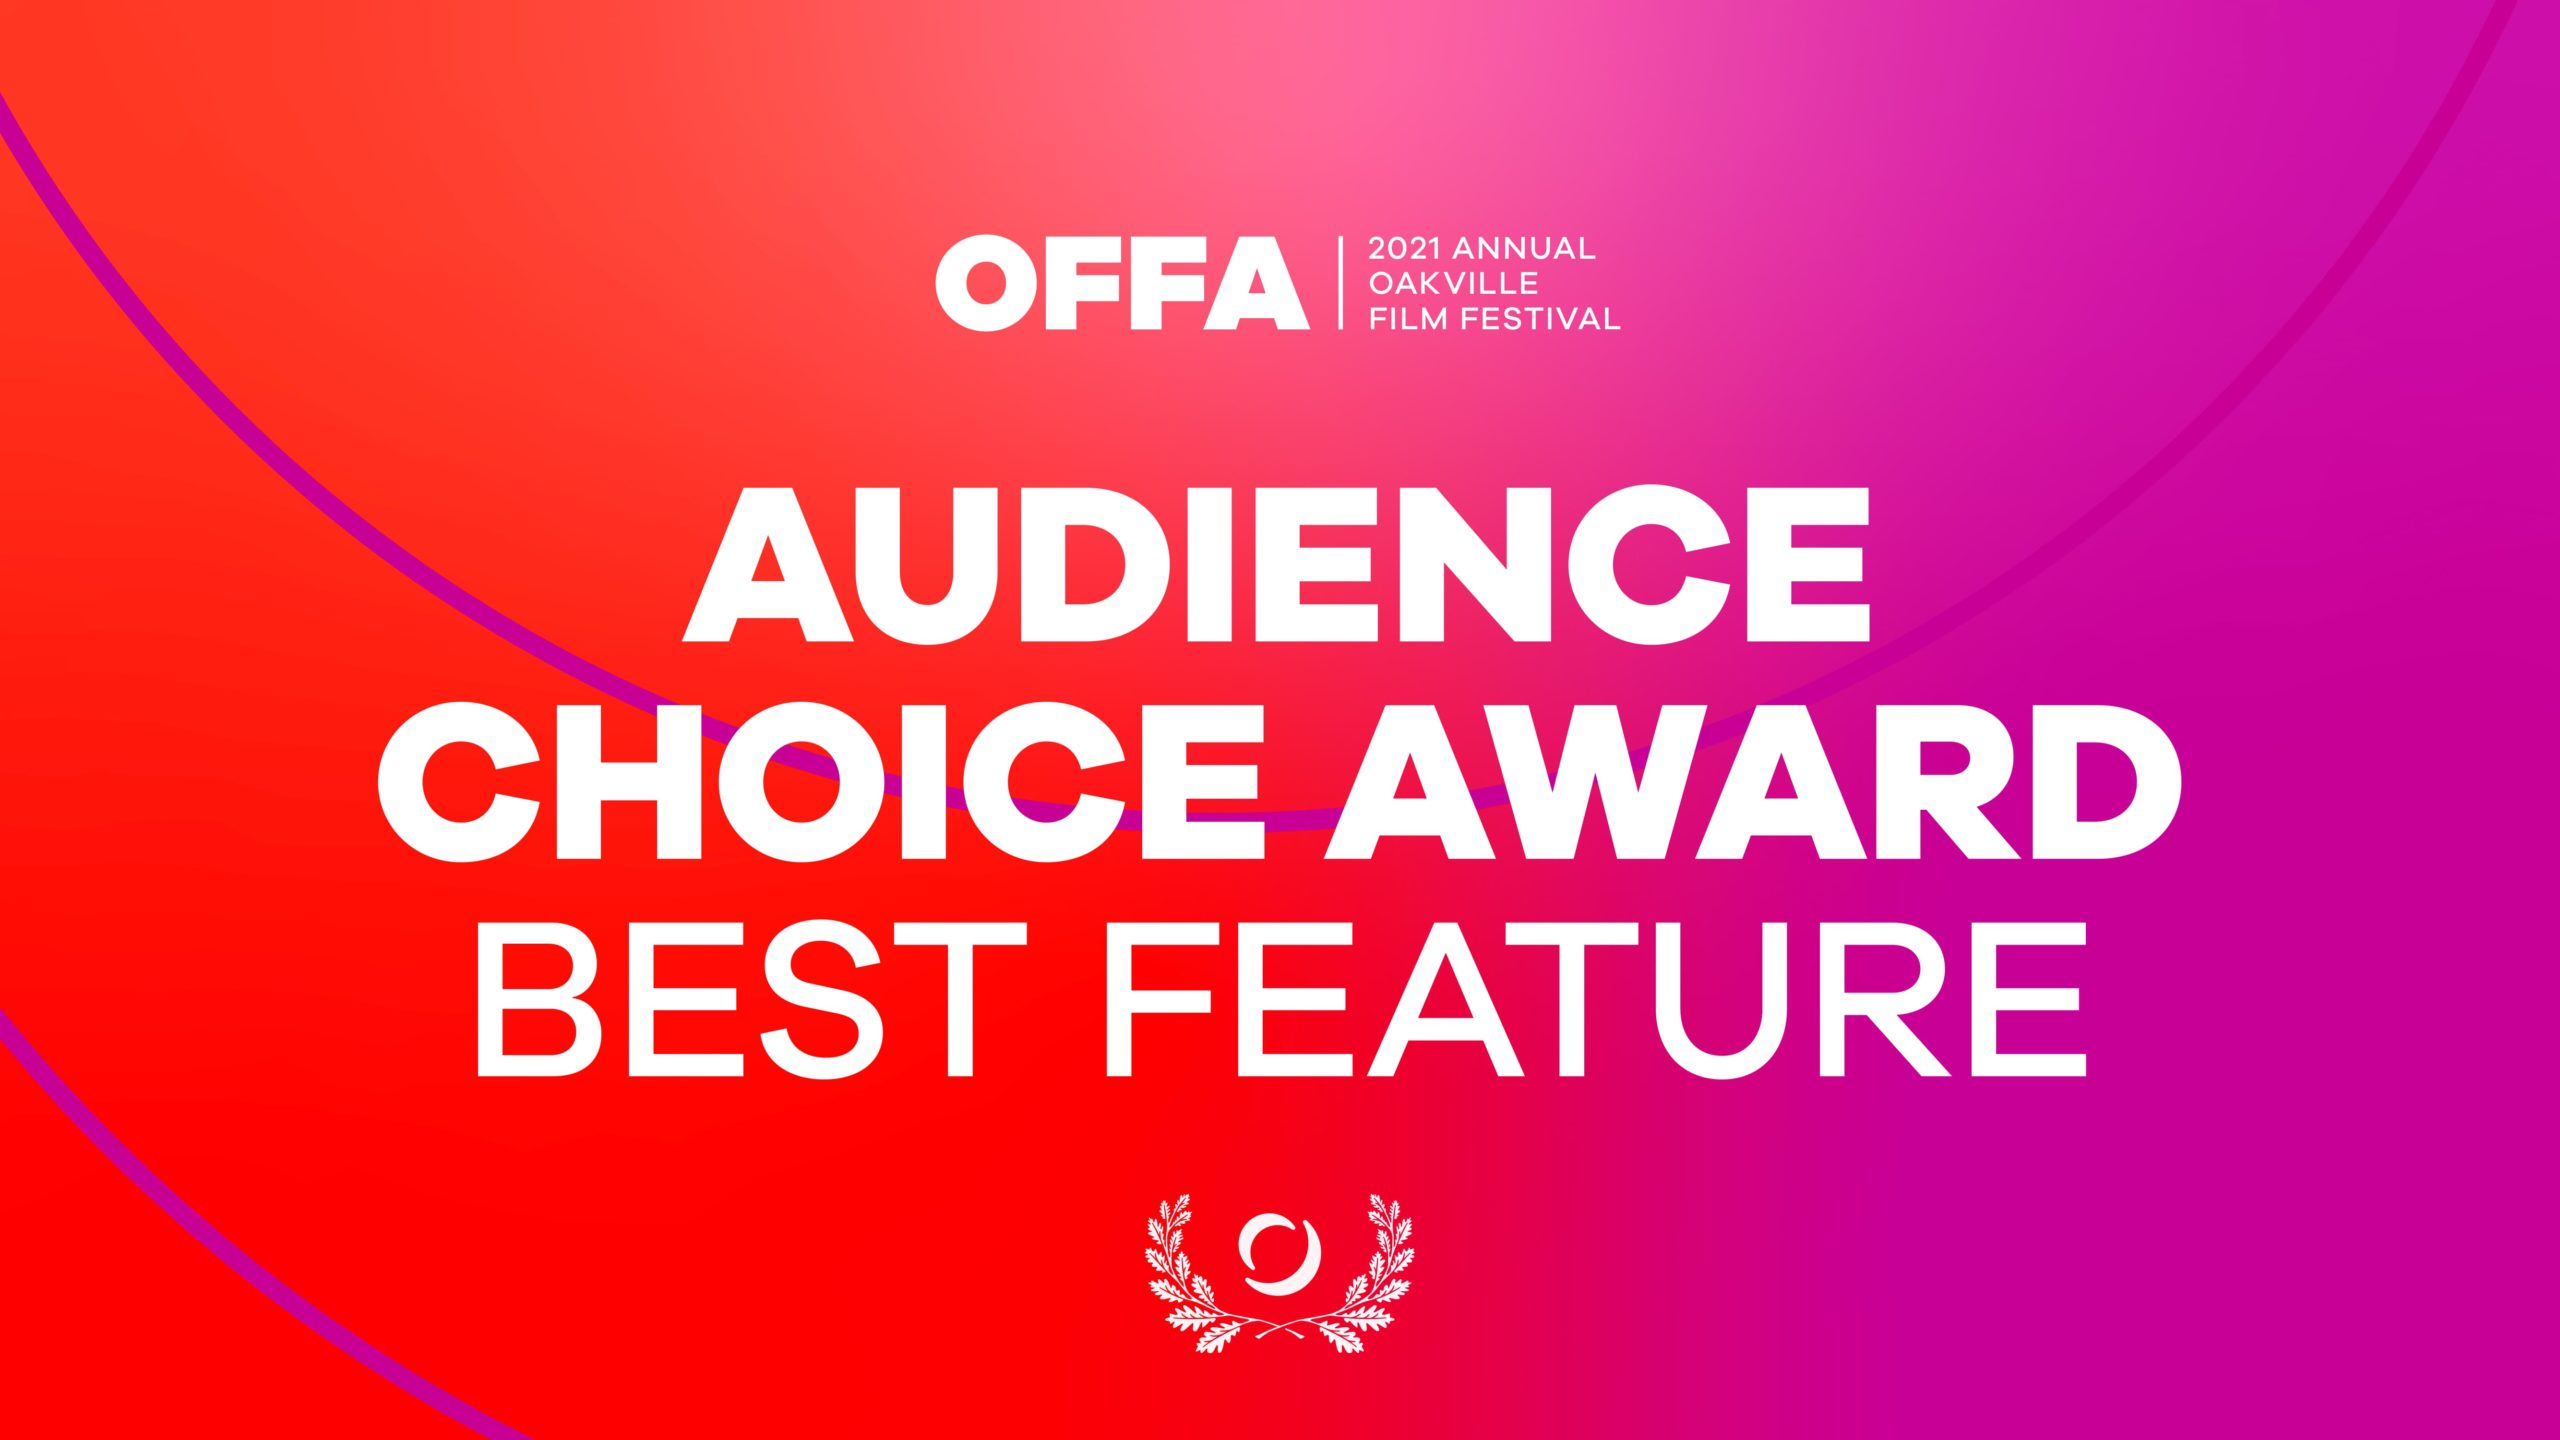 OFFA 2021 Audience Choice Award Best Feature